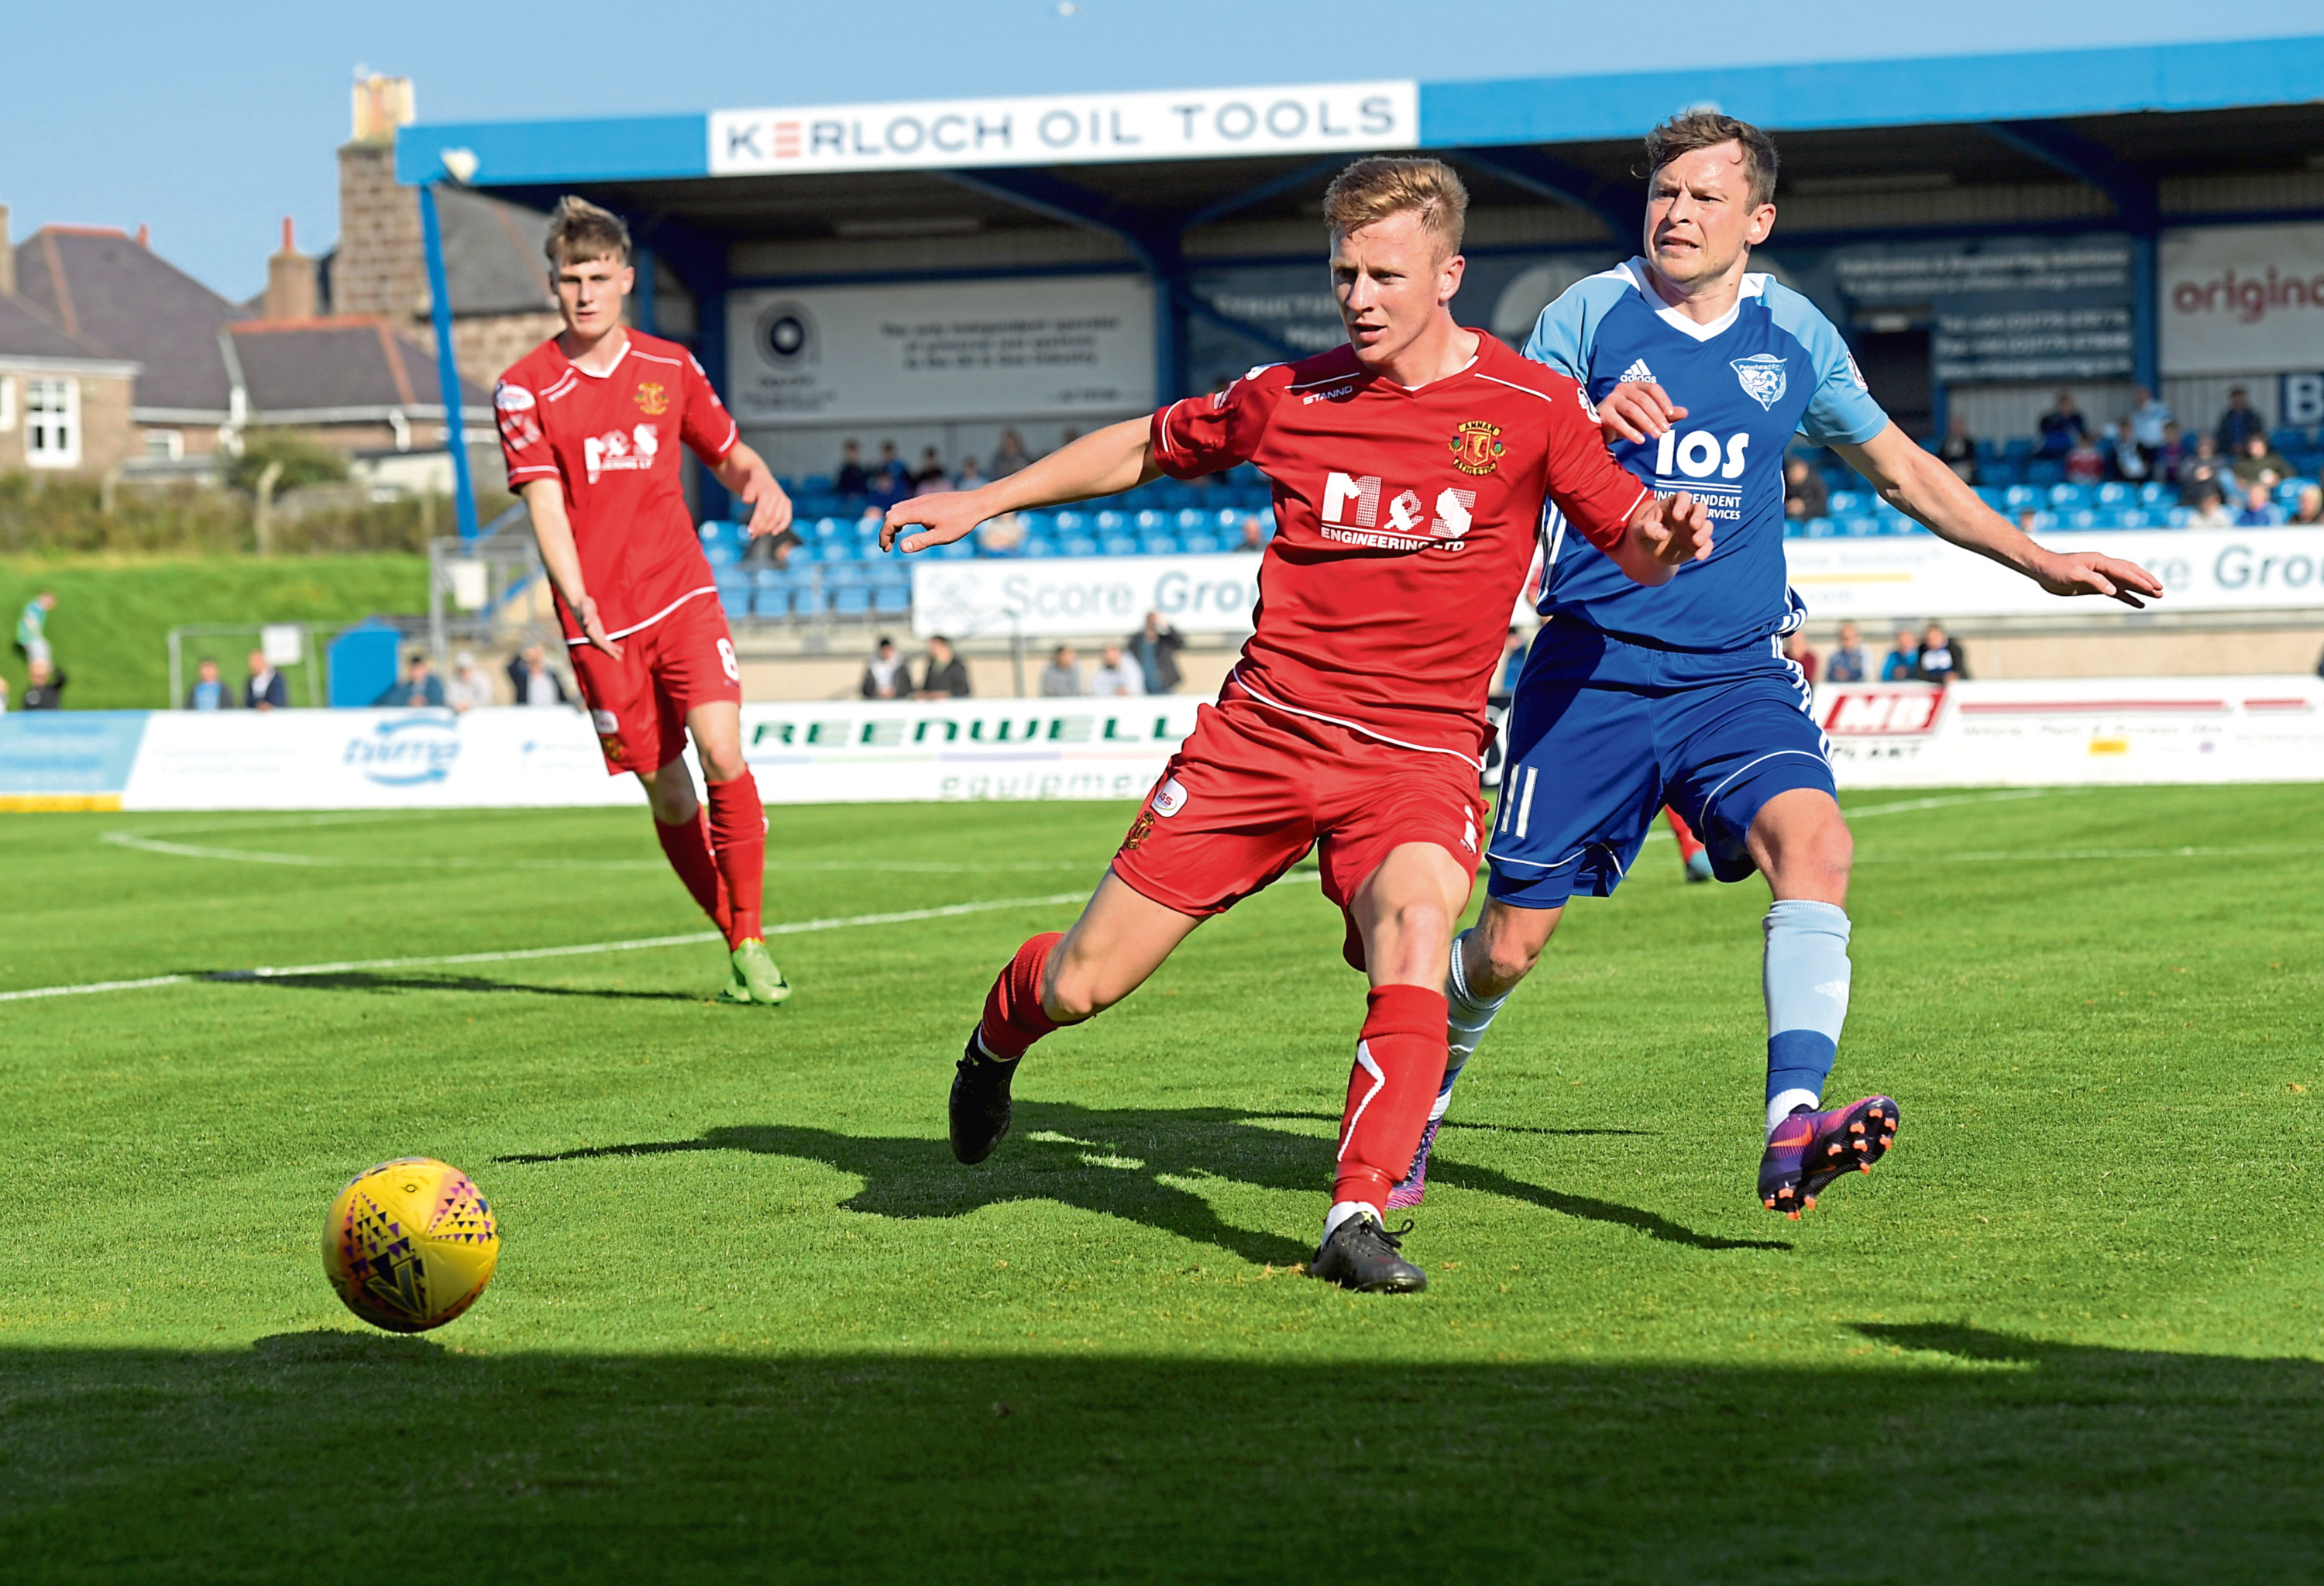 Scott Hooper in Annan colours and Peterhead's Nicky Riley.